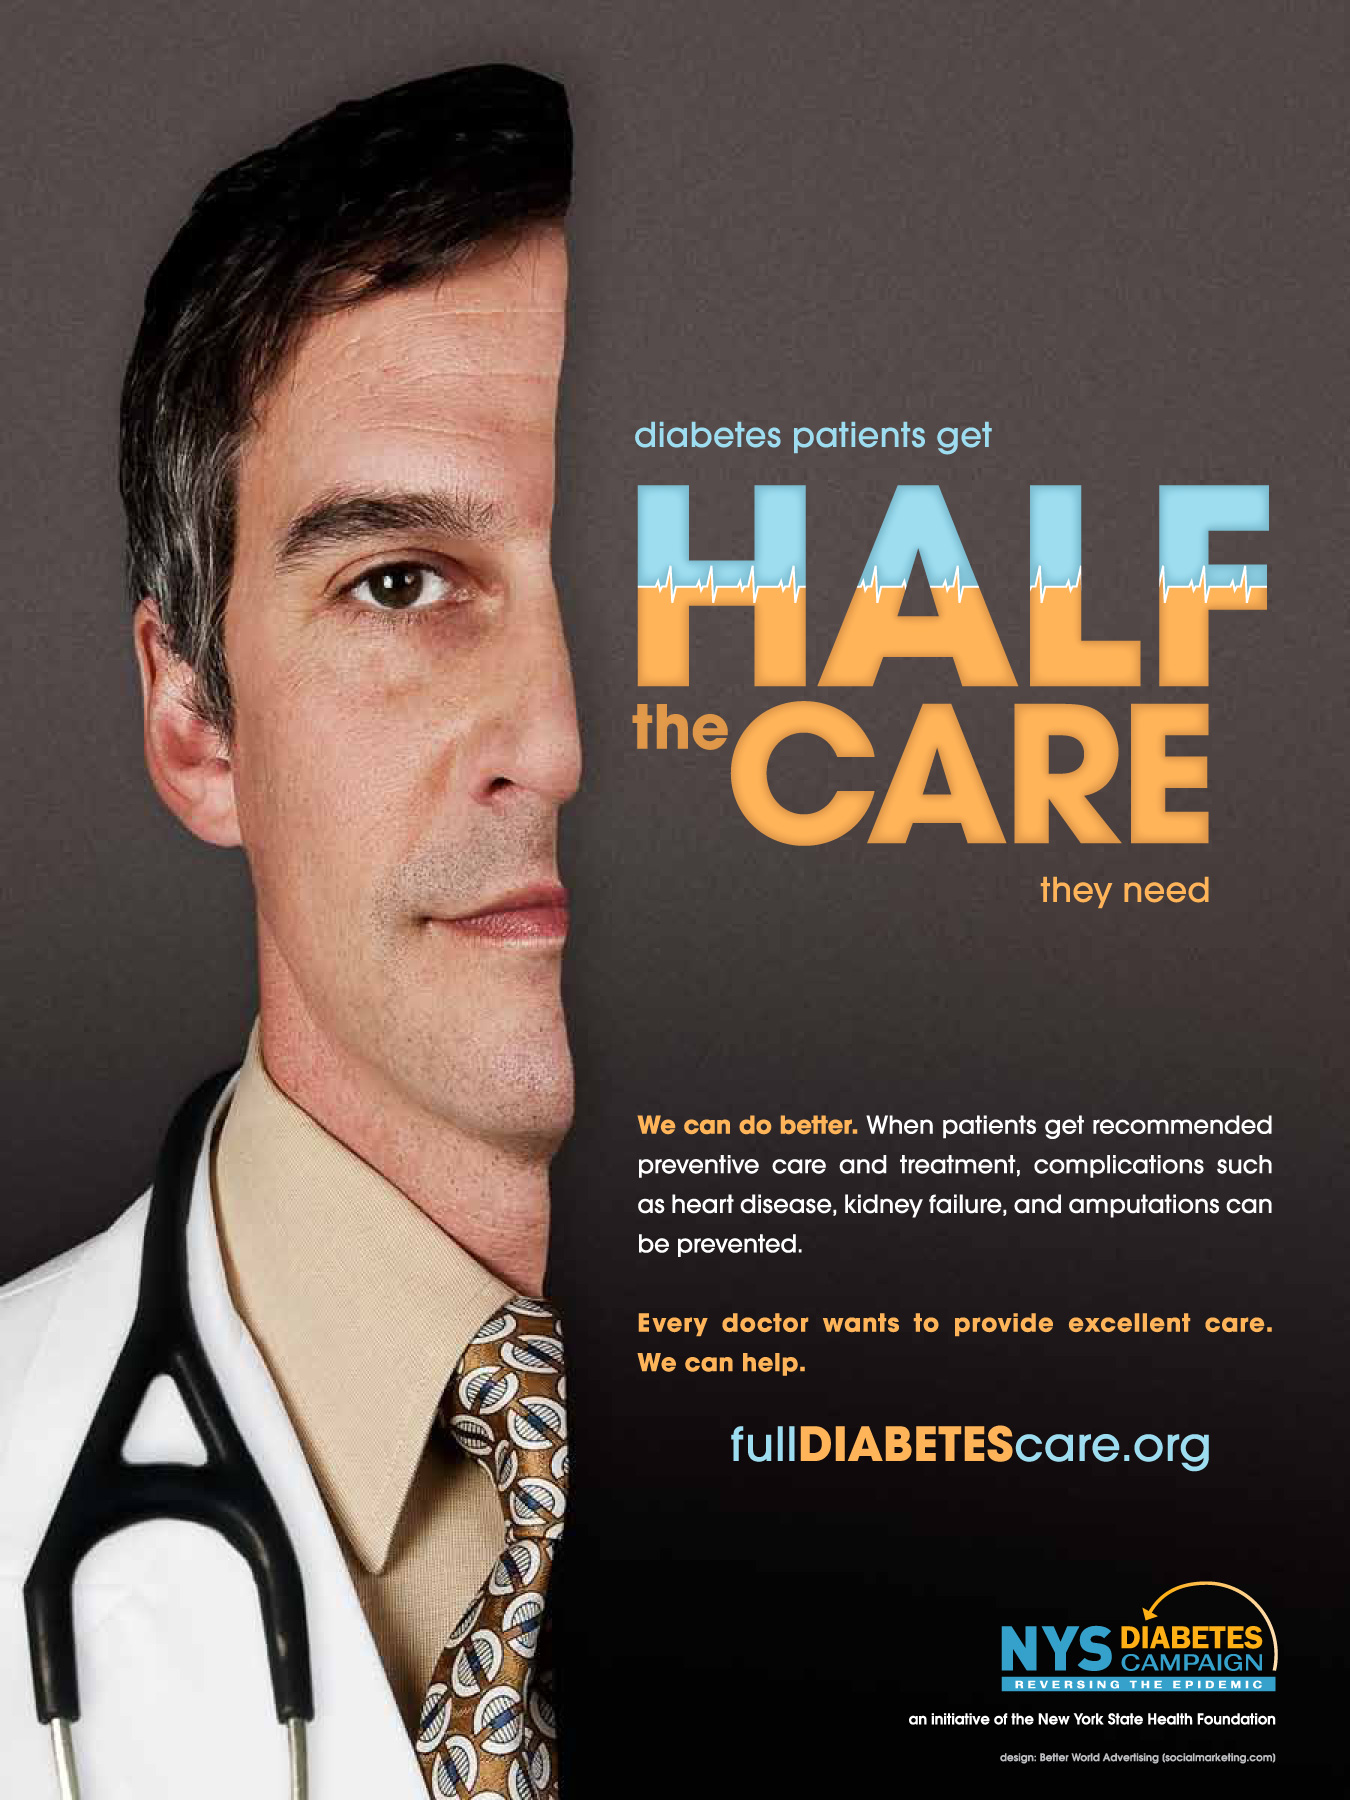 health campaign on diabetes Advocacy our advocacy efforts include supporting government funding for diabetes research and programs, ensuring access to health care, promoting the prevention of type 2 diabetes, combatting discrimination, and much more.